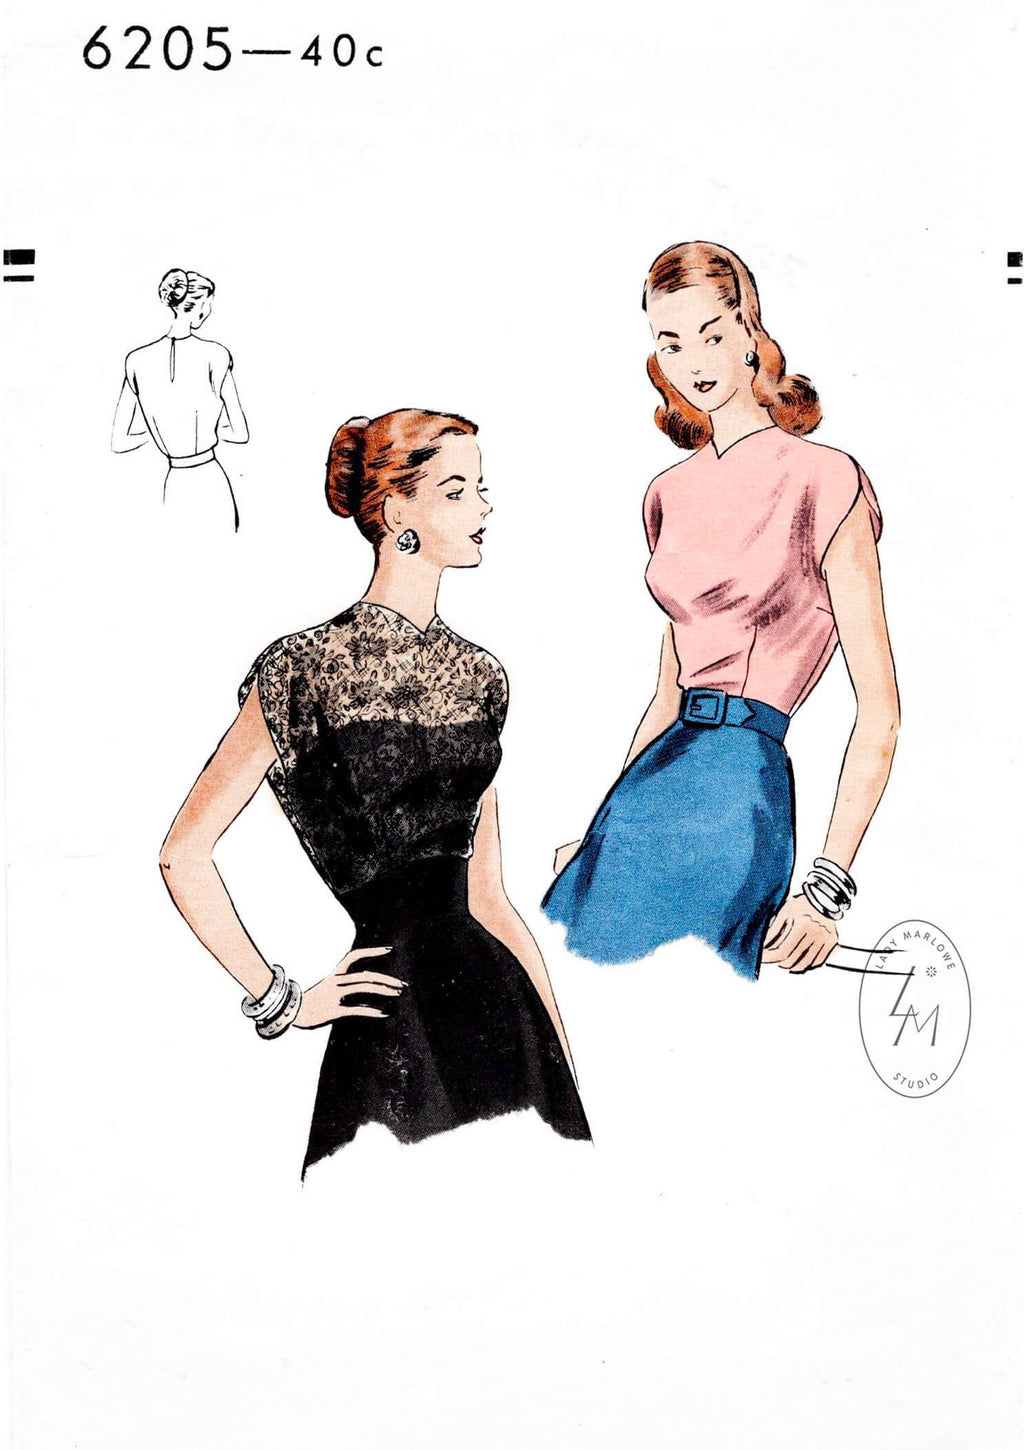 Vogue 6205 vintage sewing pattern 1940s Blouse cap sleeves fitted bodice, easy to make reproduction